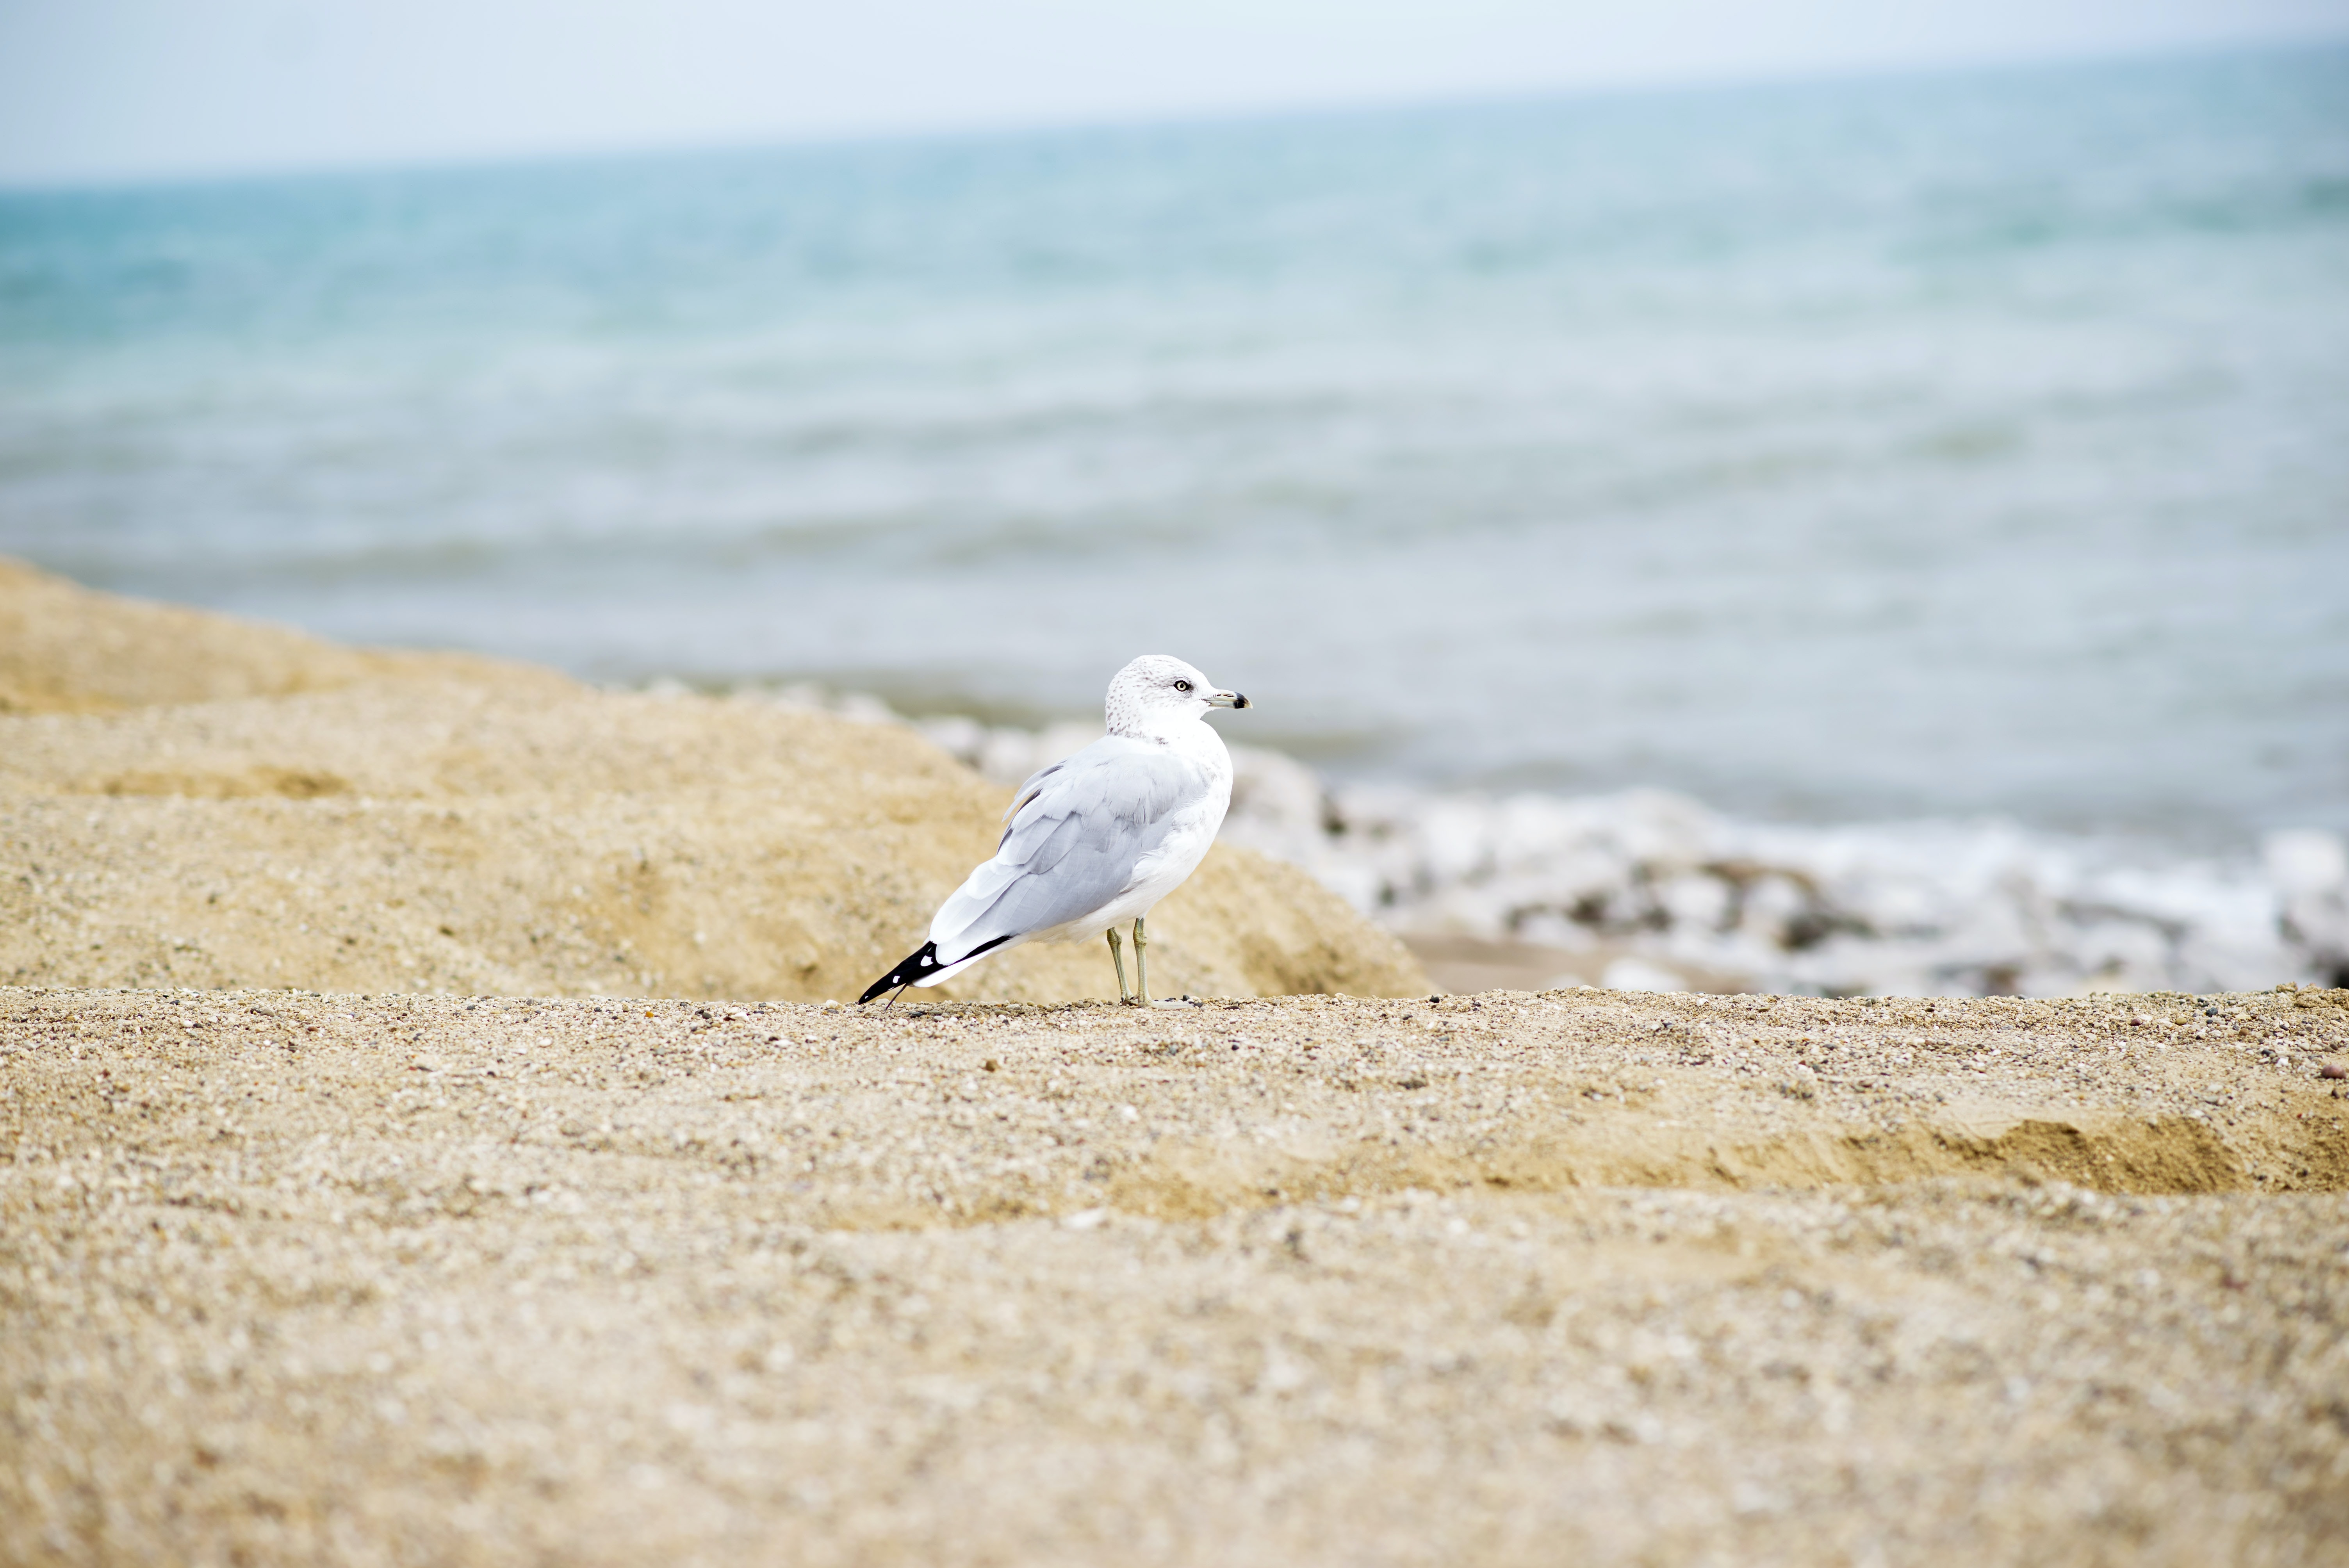 white seagull on seashore